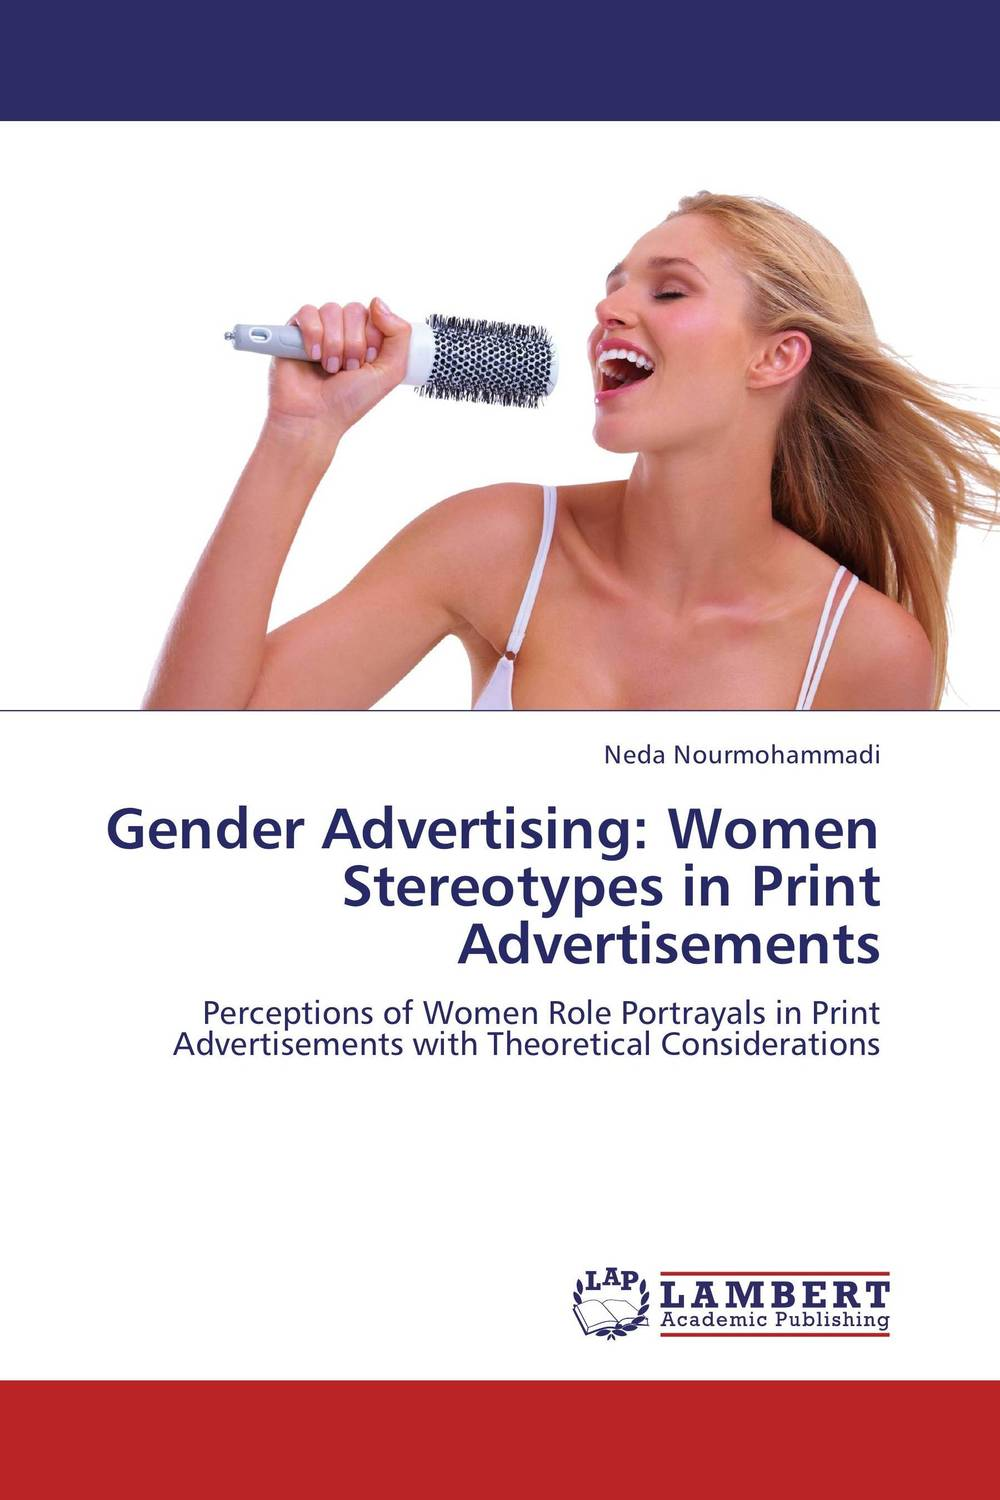 Gender Advertising: Women Stereotypes in Print Advertisements driven to distraction